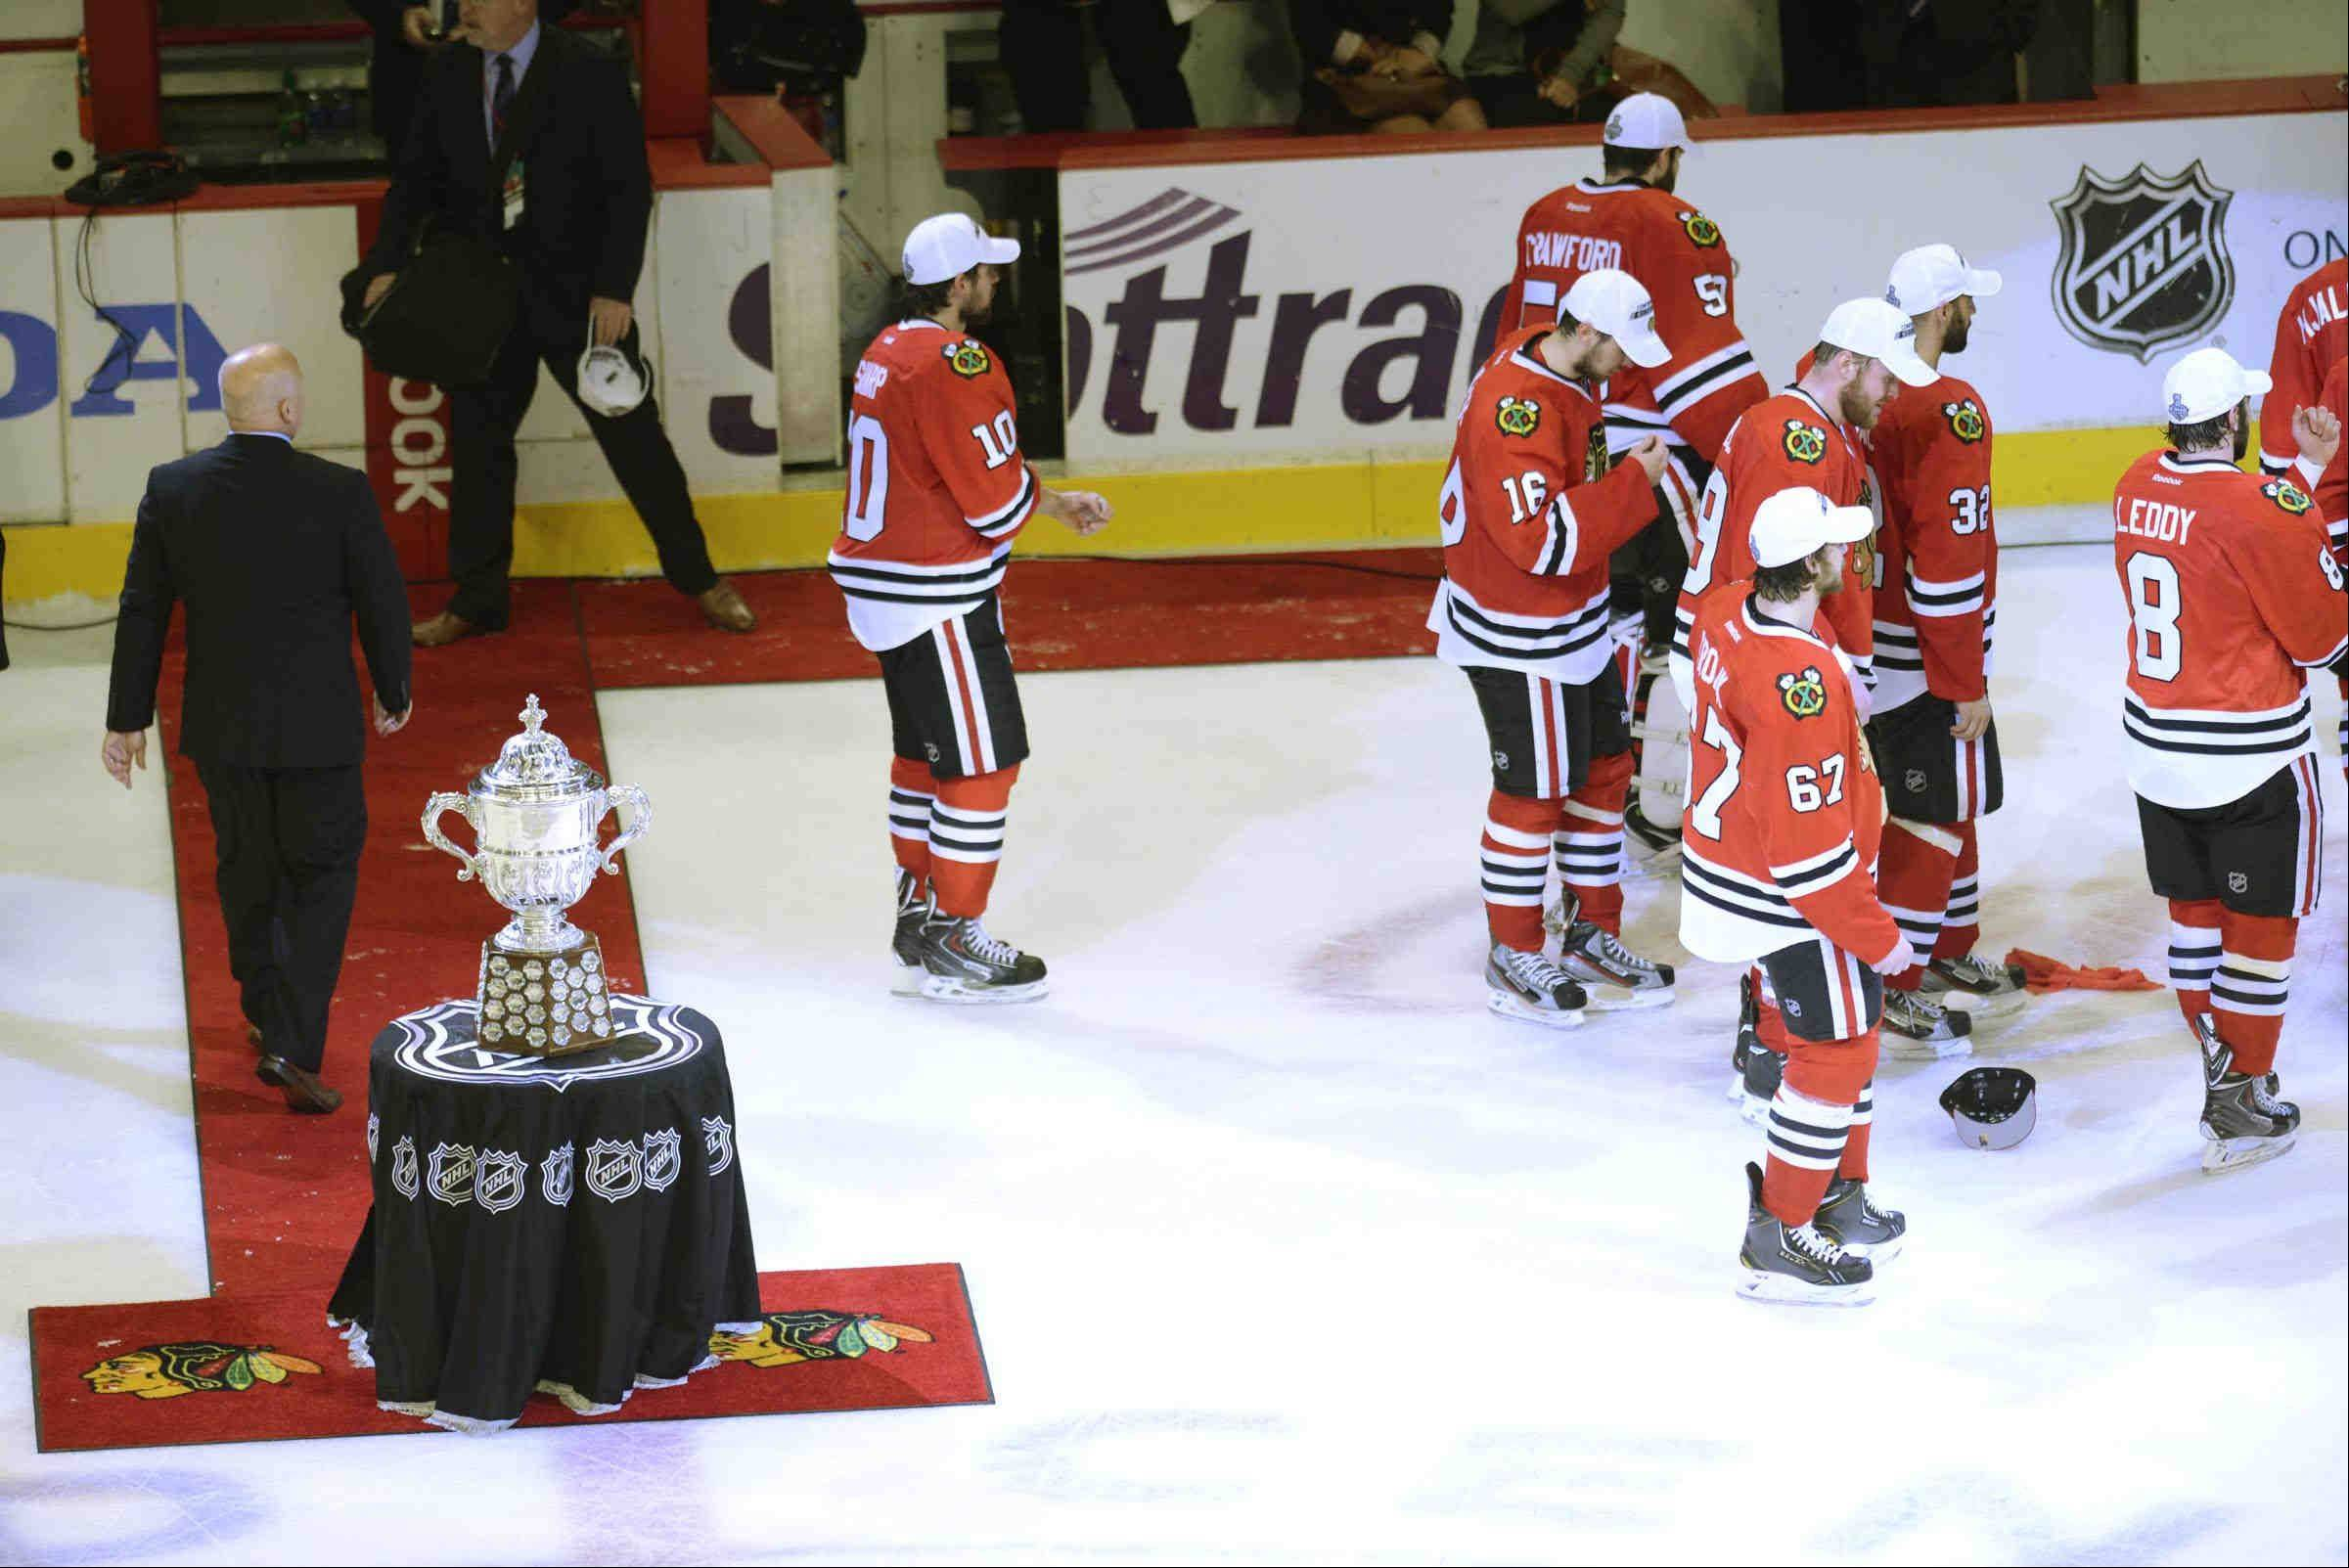 The Chicago Blackhawks leave the Campbell Cup without touching it Saturday at the United Center in Chicago.